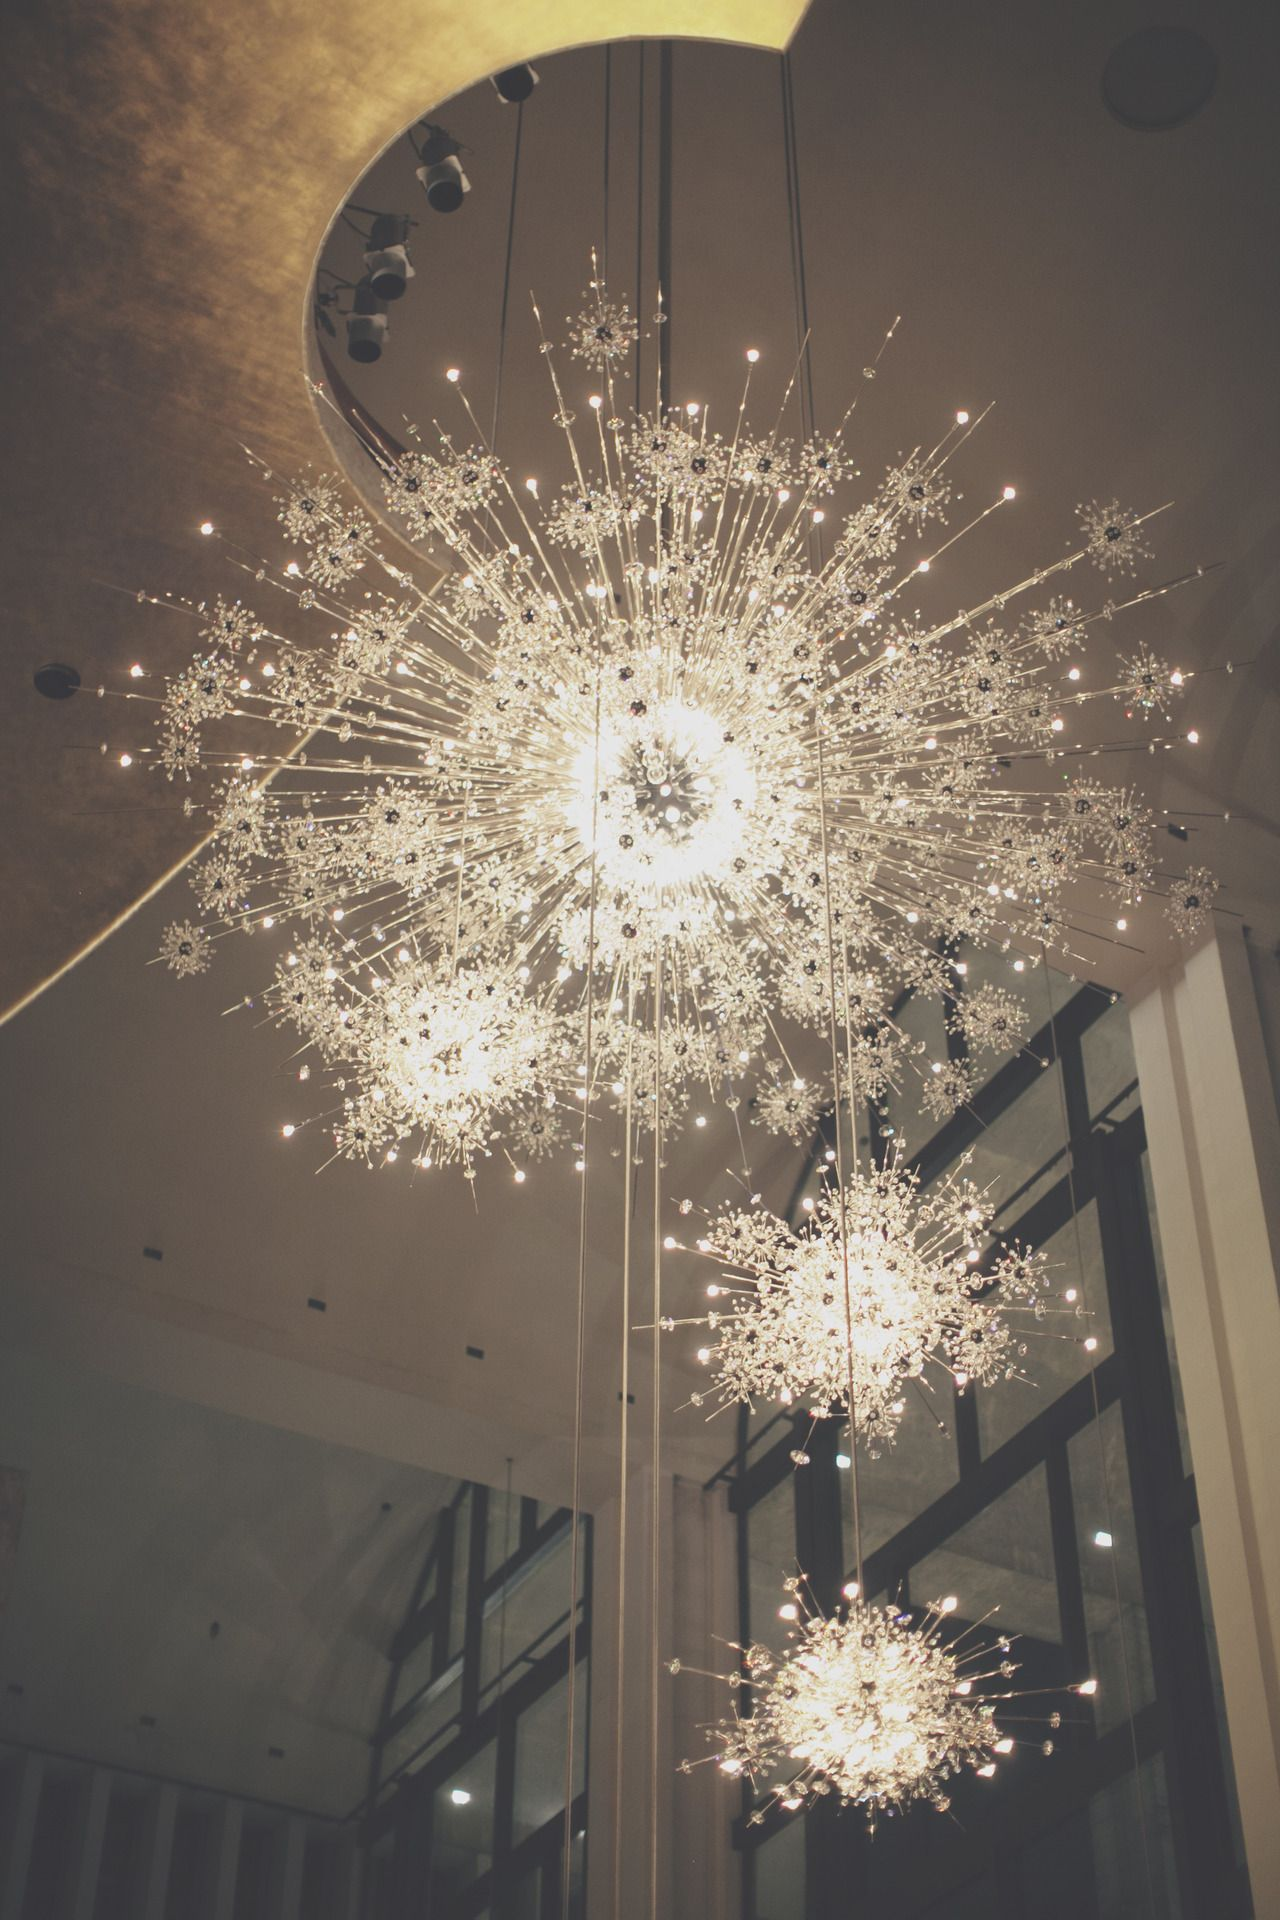 The chandeliers at the Metropolitan Opera photo by James Nord